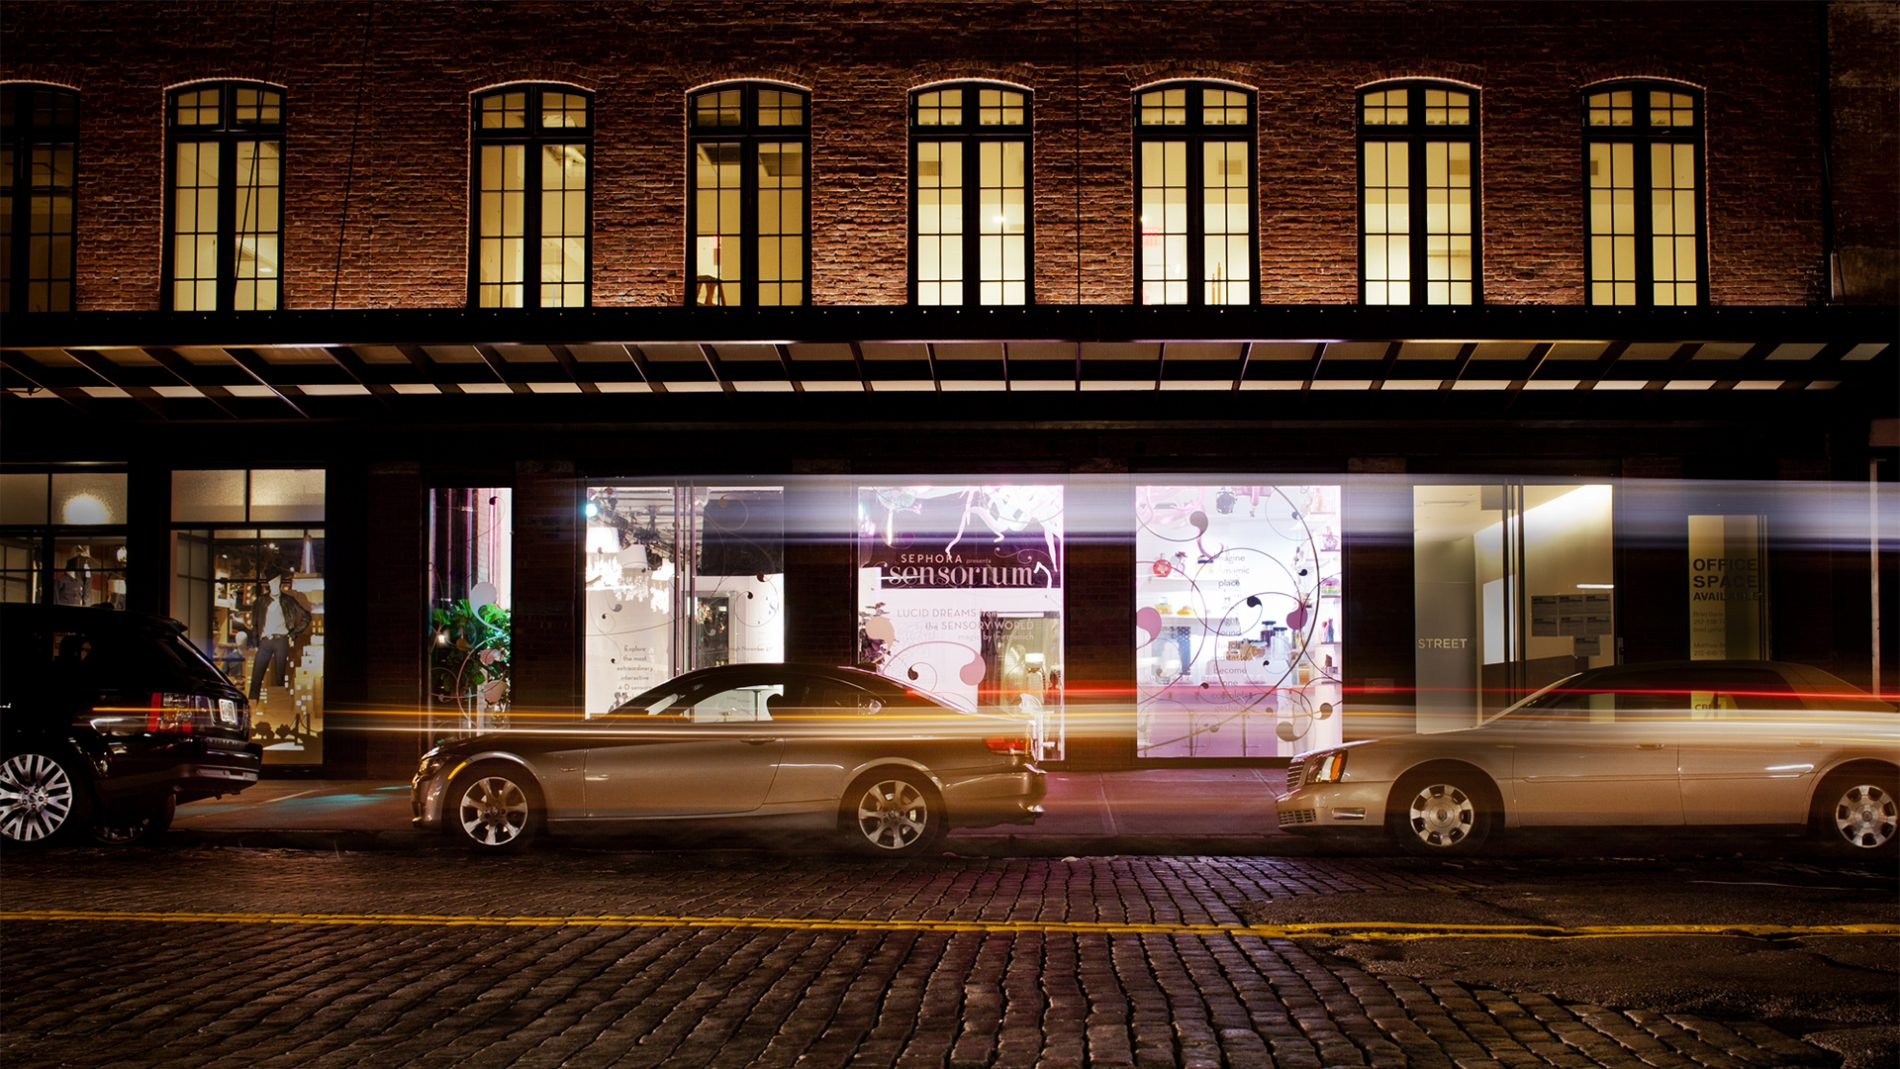 Exterior view of Sephora Sensorium, a fragrance space pop up by Chelsea Market in New York, facing the cobblestone road and cars parked. MEP designed by 2L Engineering.